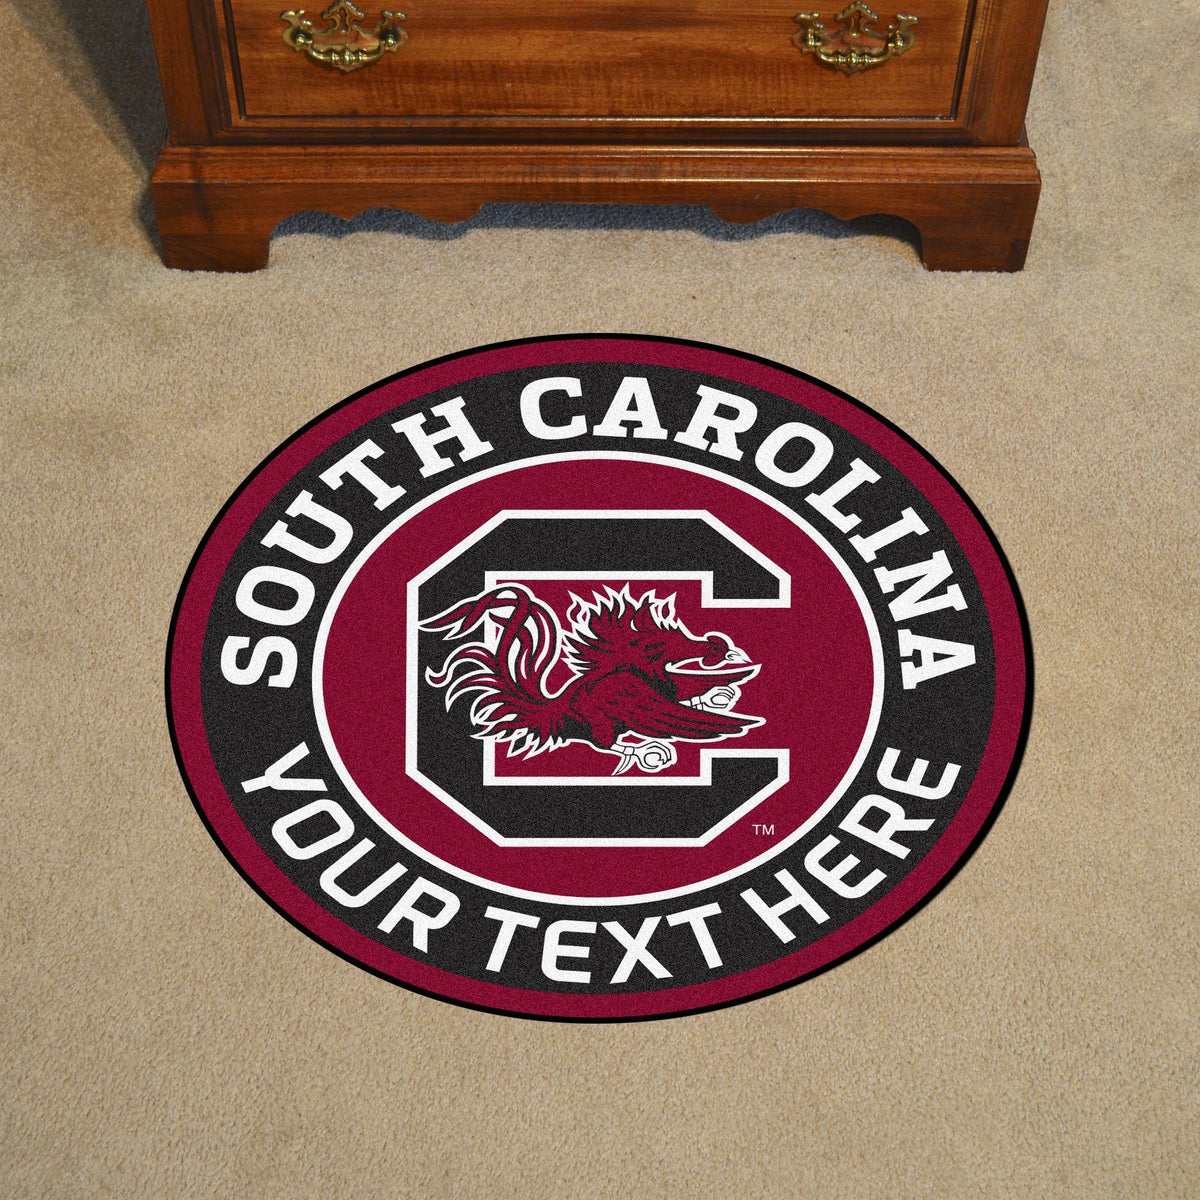 Collegiate Personalized Roundel Mat Personalized Roundel Mat Fan Mats University of South Carolina